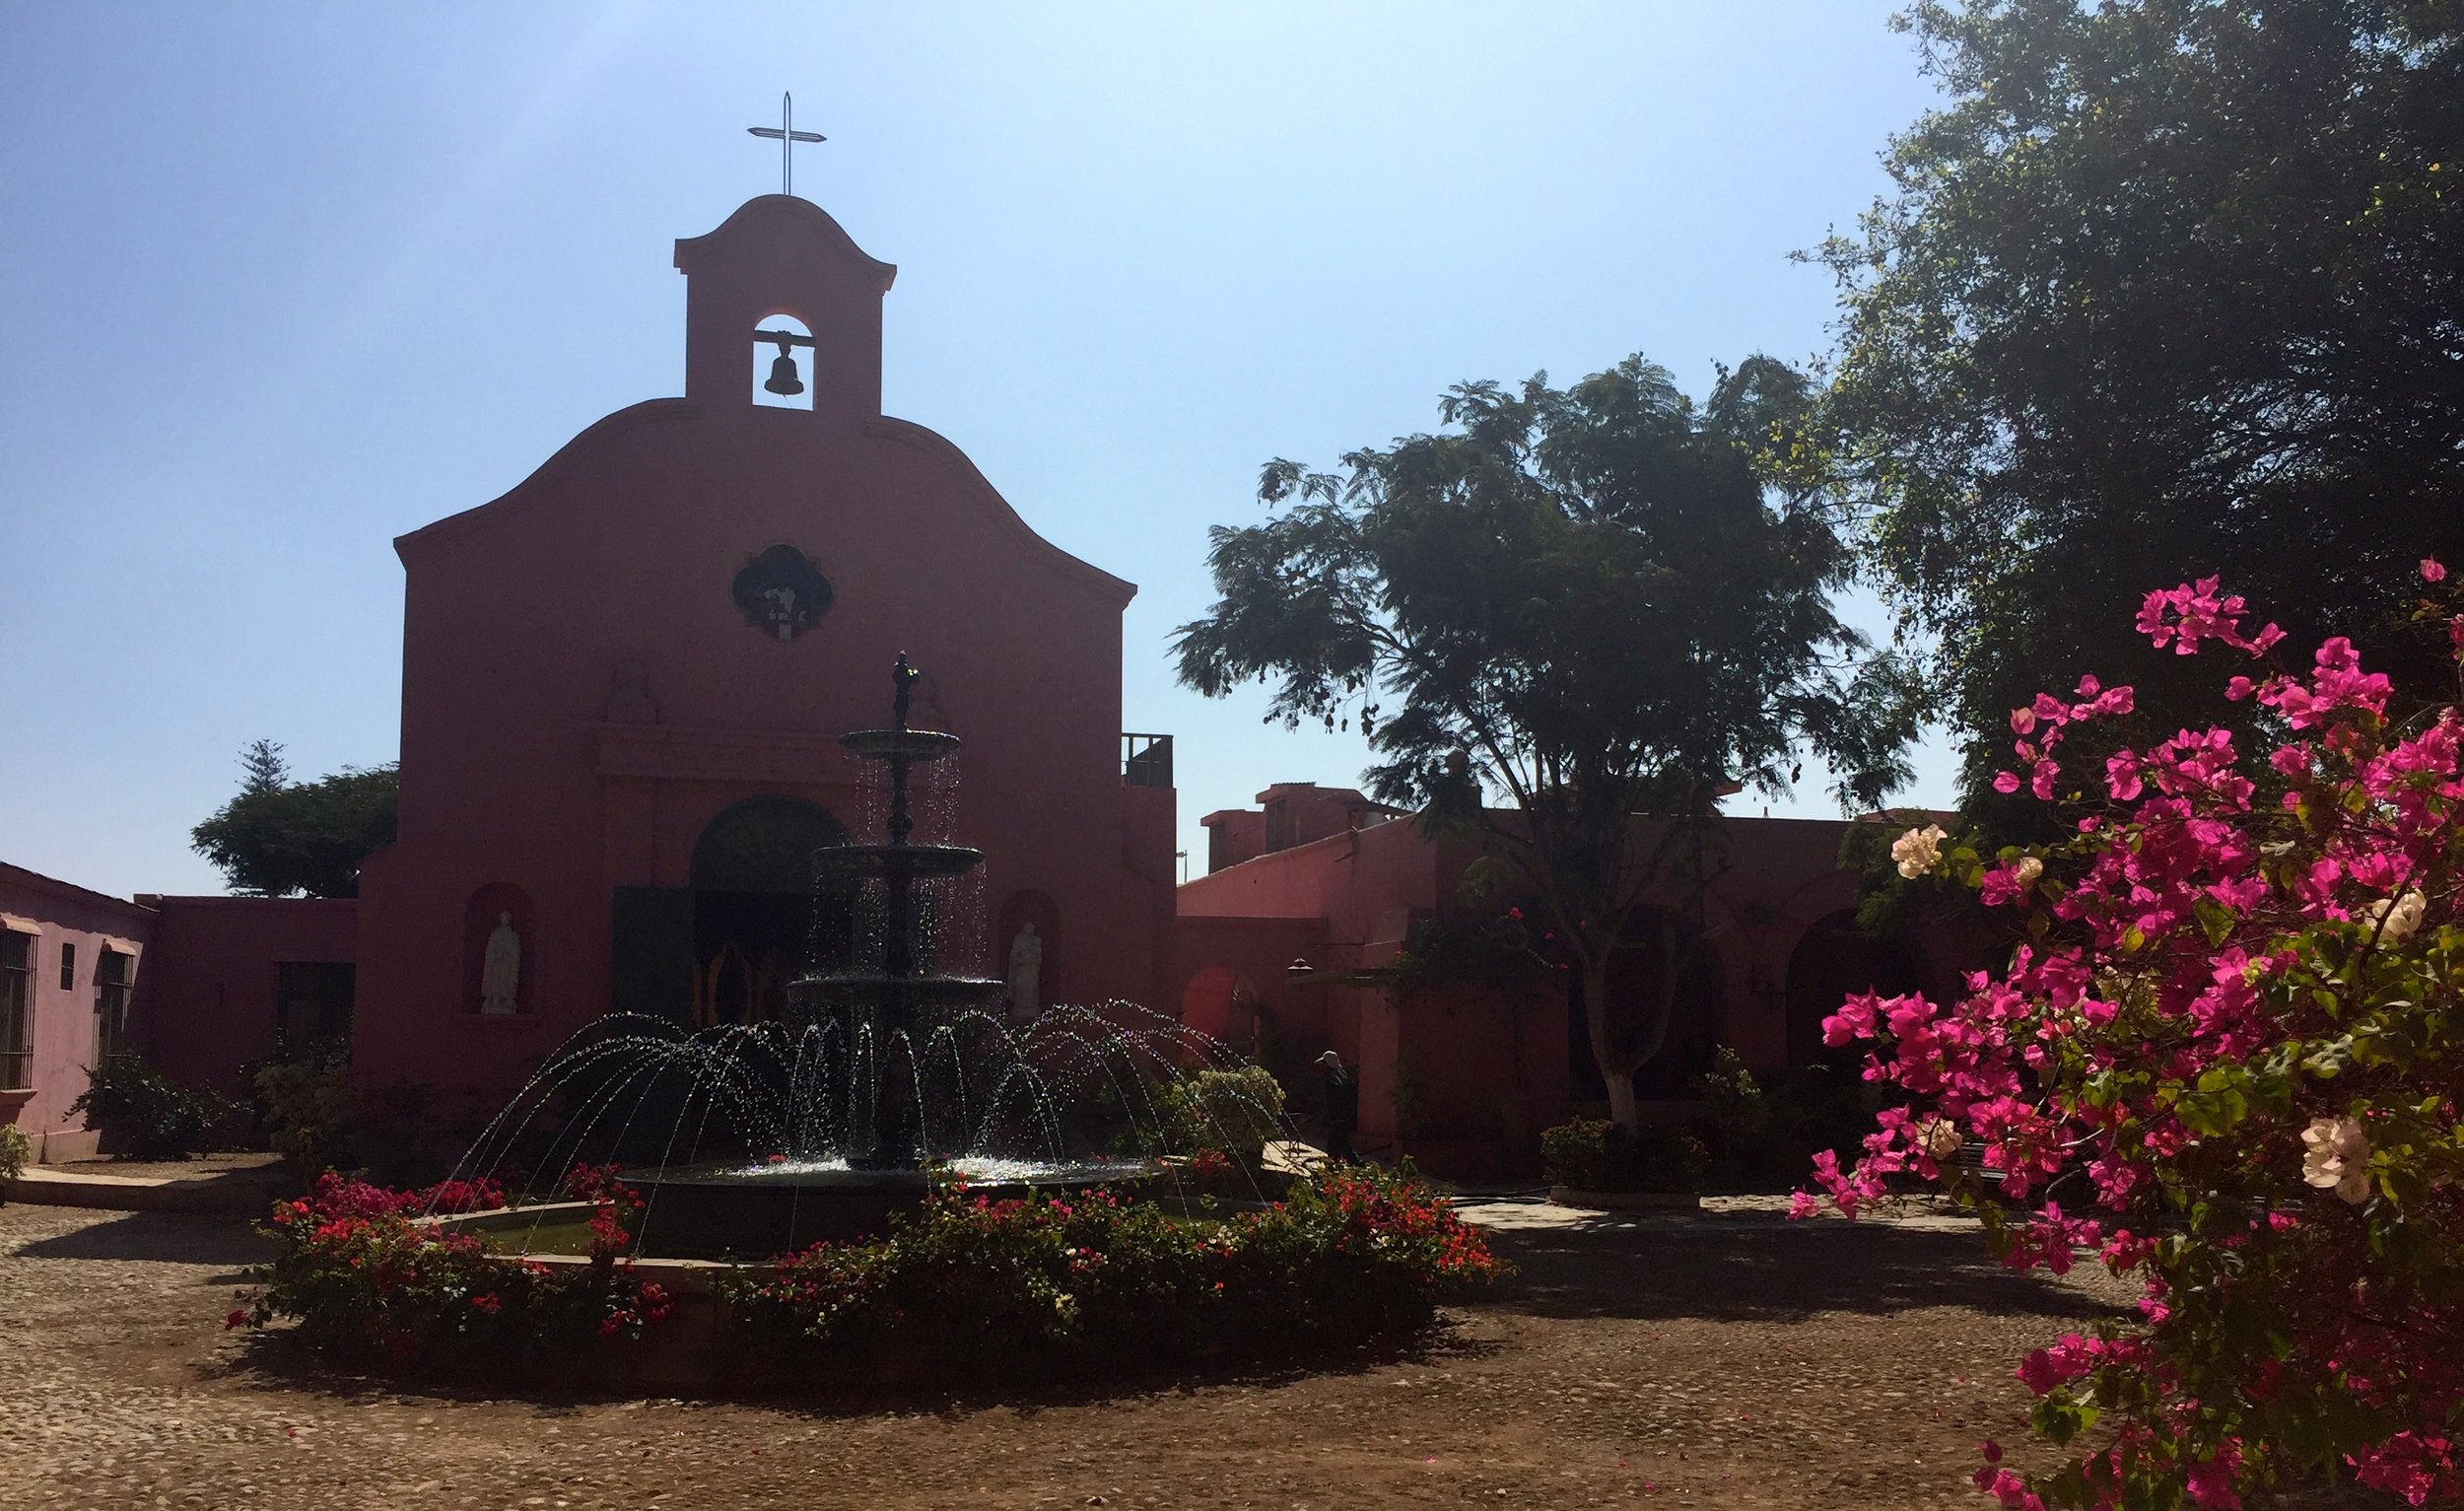 The old church and hacienda buildings.